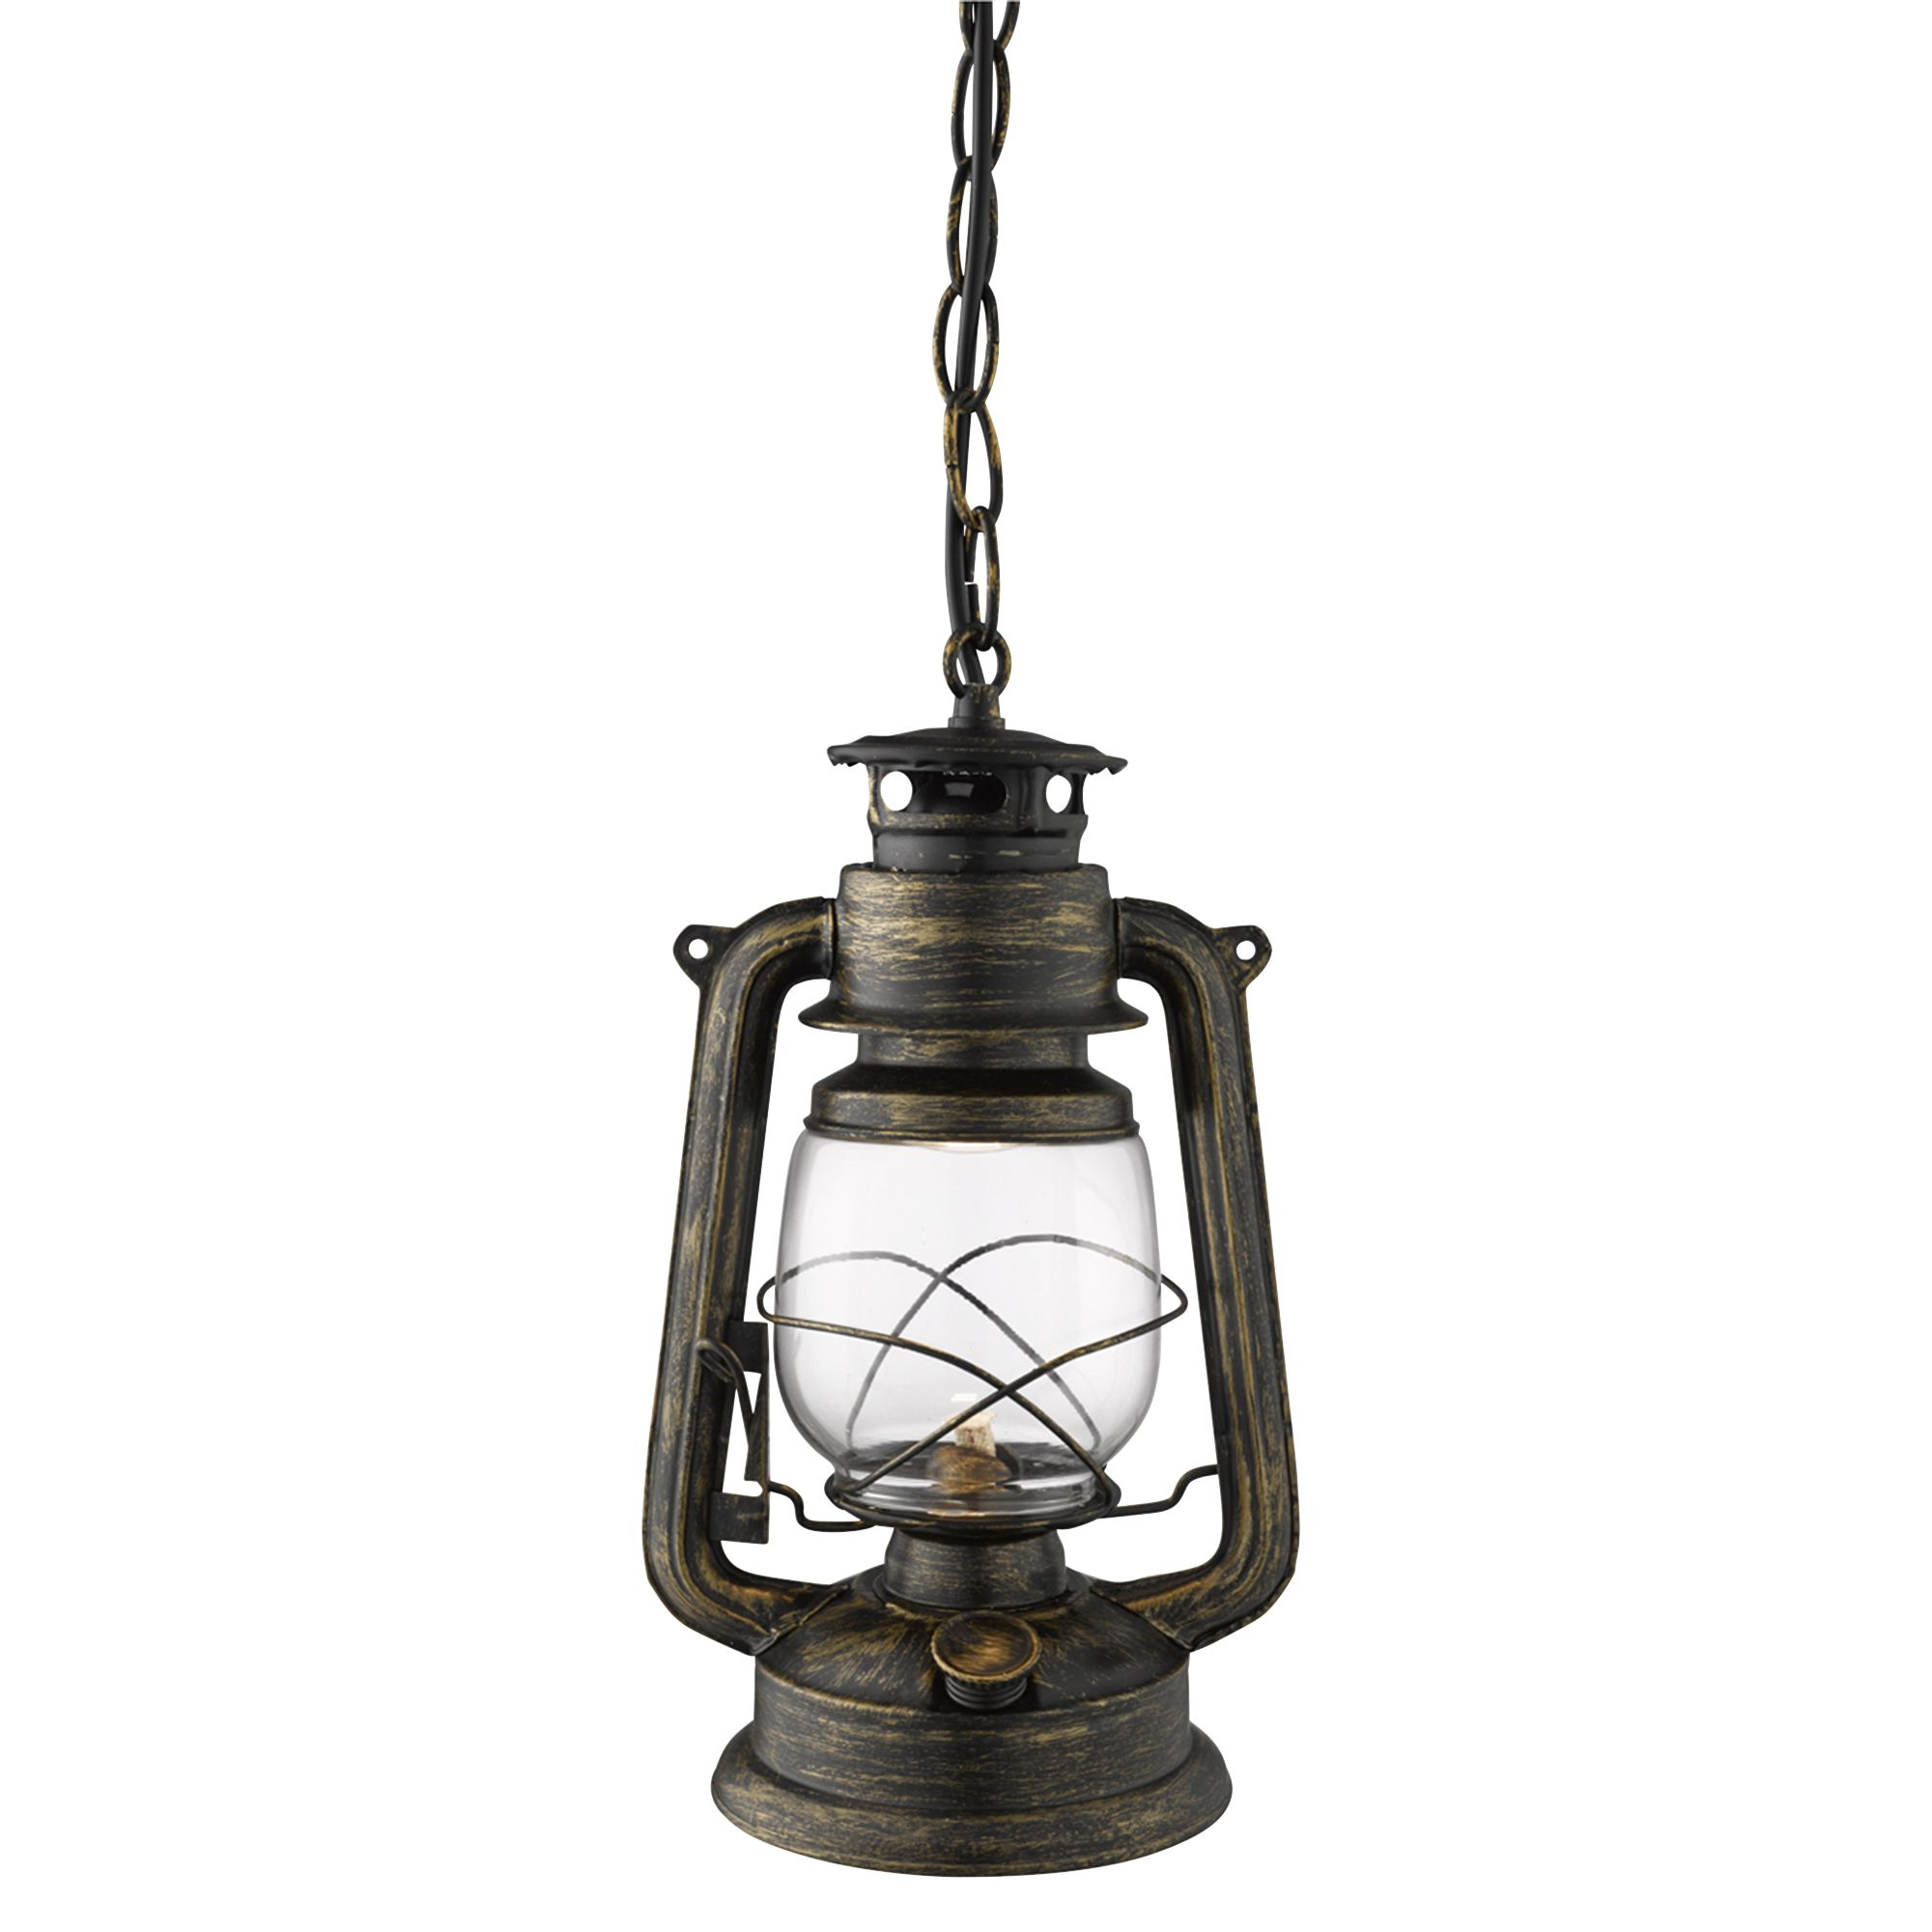 new product 11351 a8f28 Hurricane Lantern Pendant Light In Black Gold With White Glass